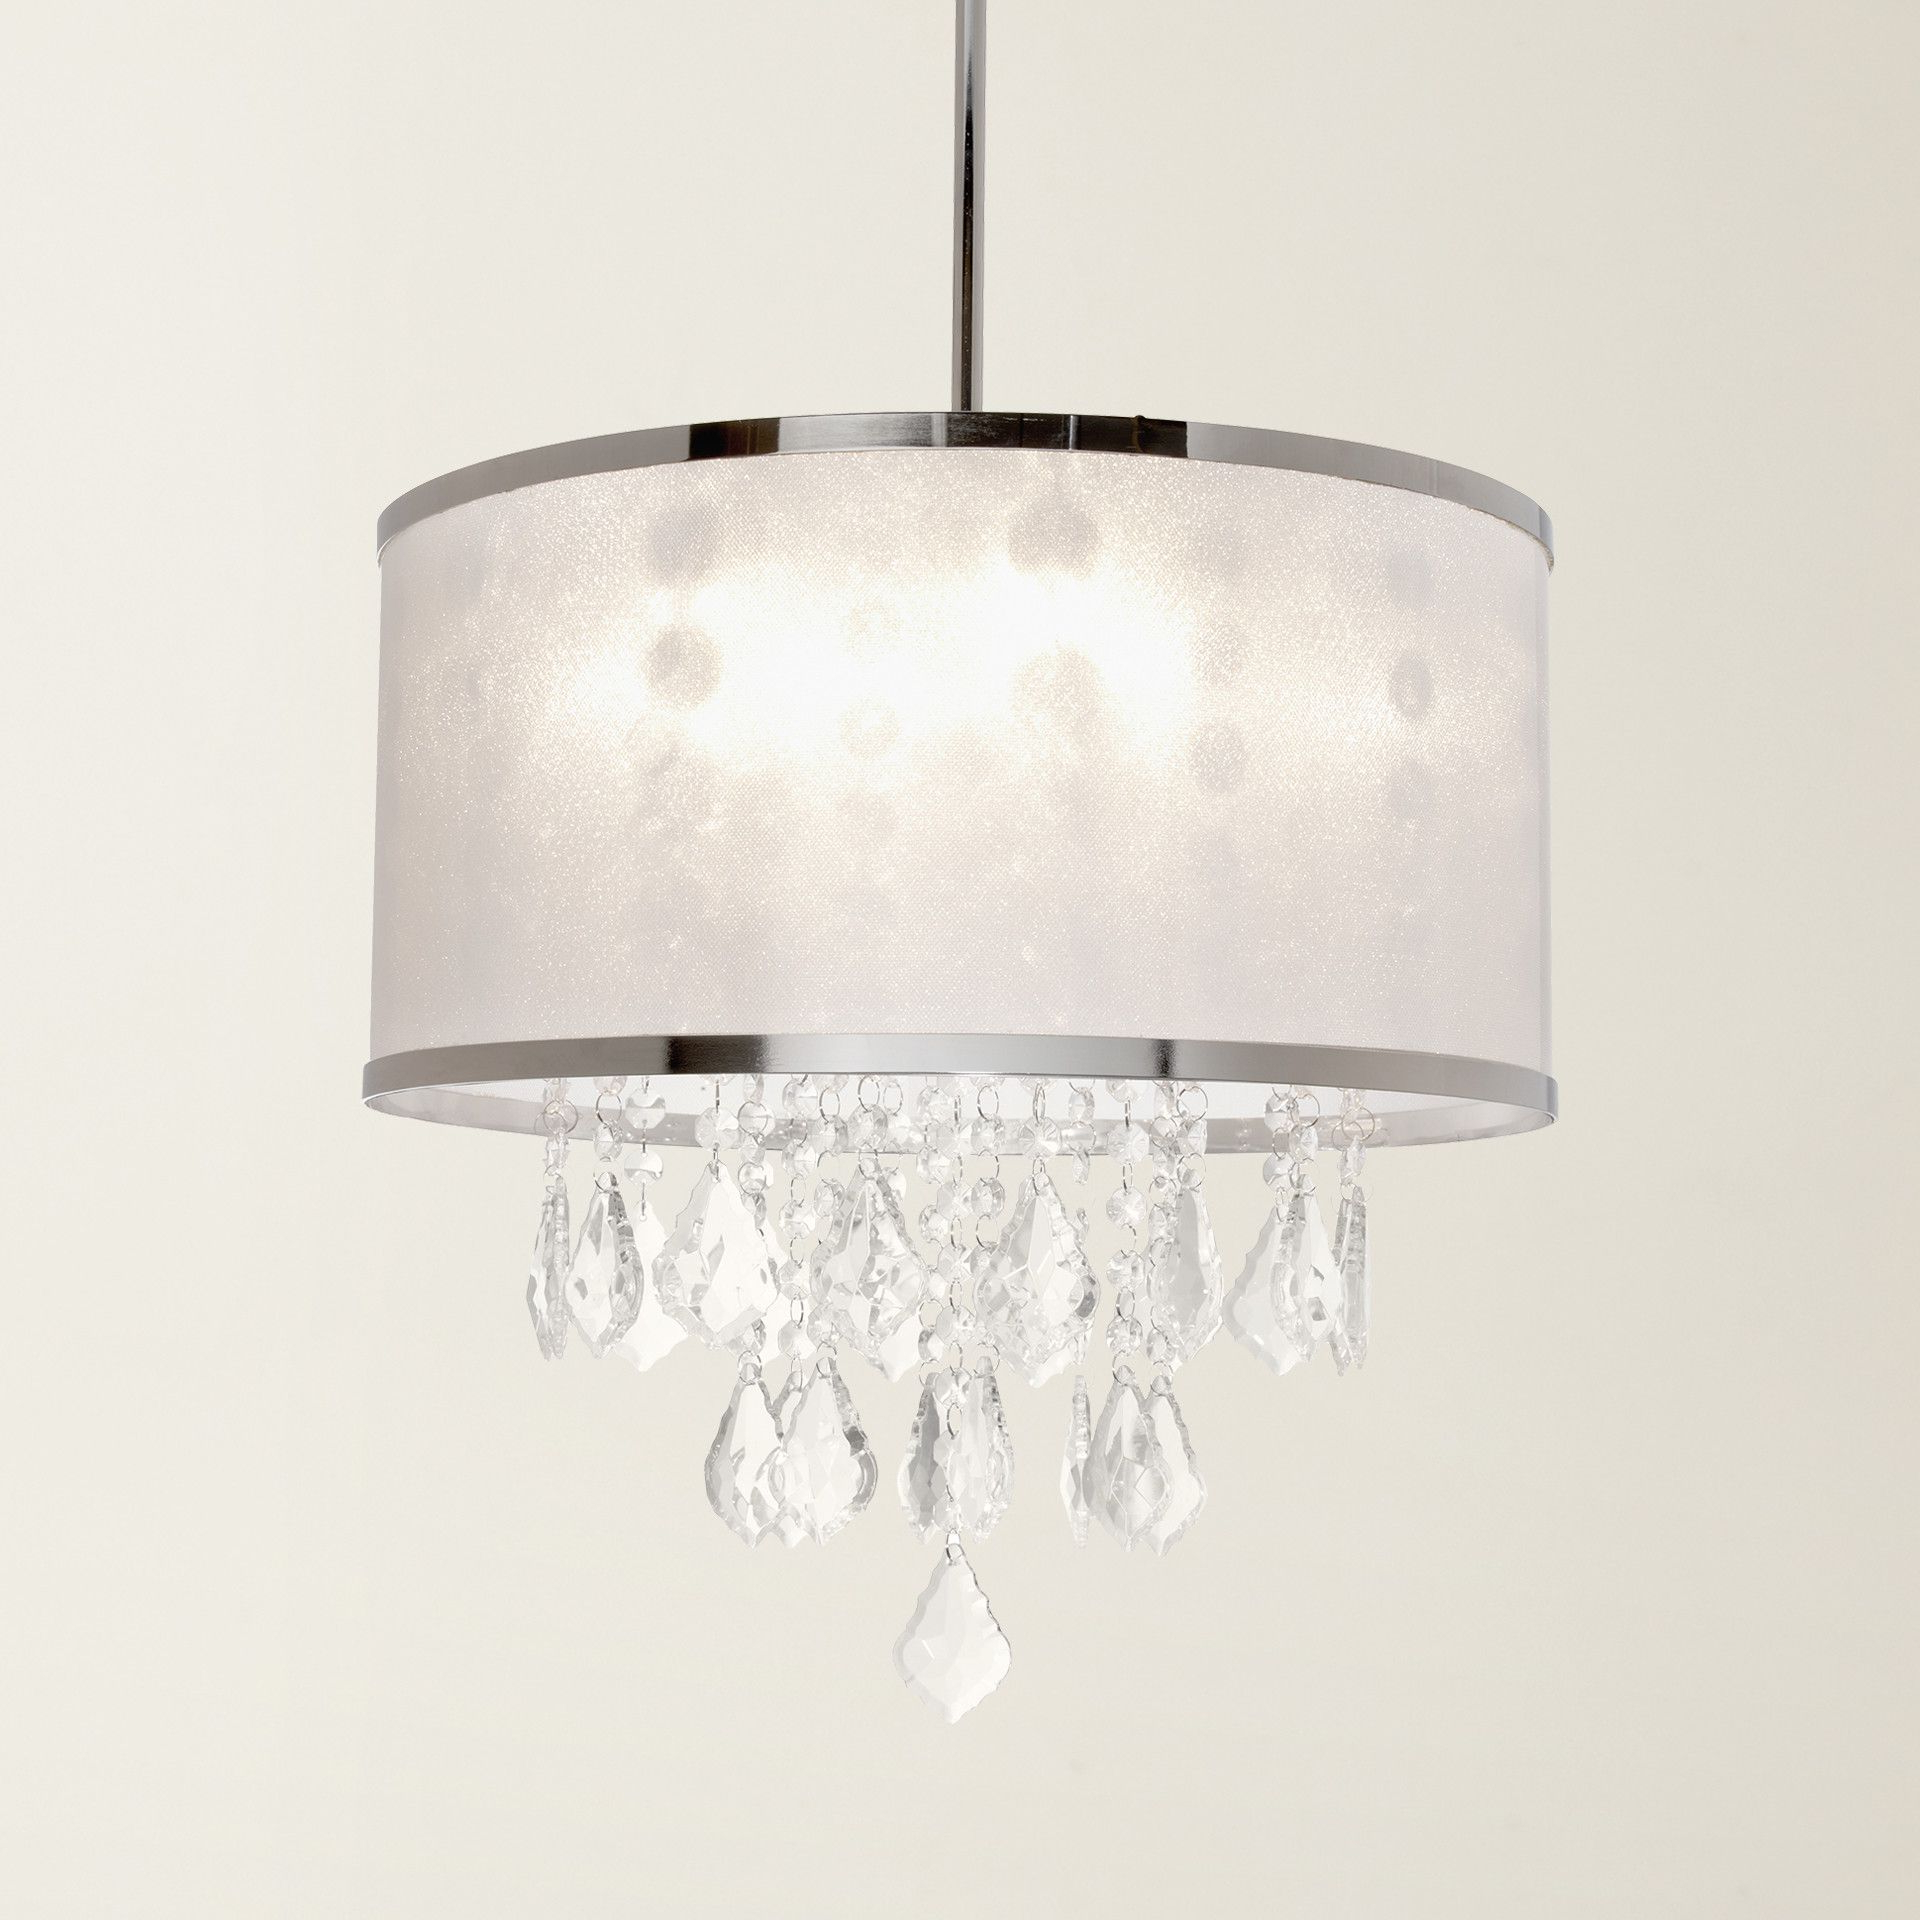 Famous House Of Hampton® Leibowitz 4 Light Drum Chandelier Throughout Lindsey 4 Light Drum Chandeliers (View 4 of 20)